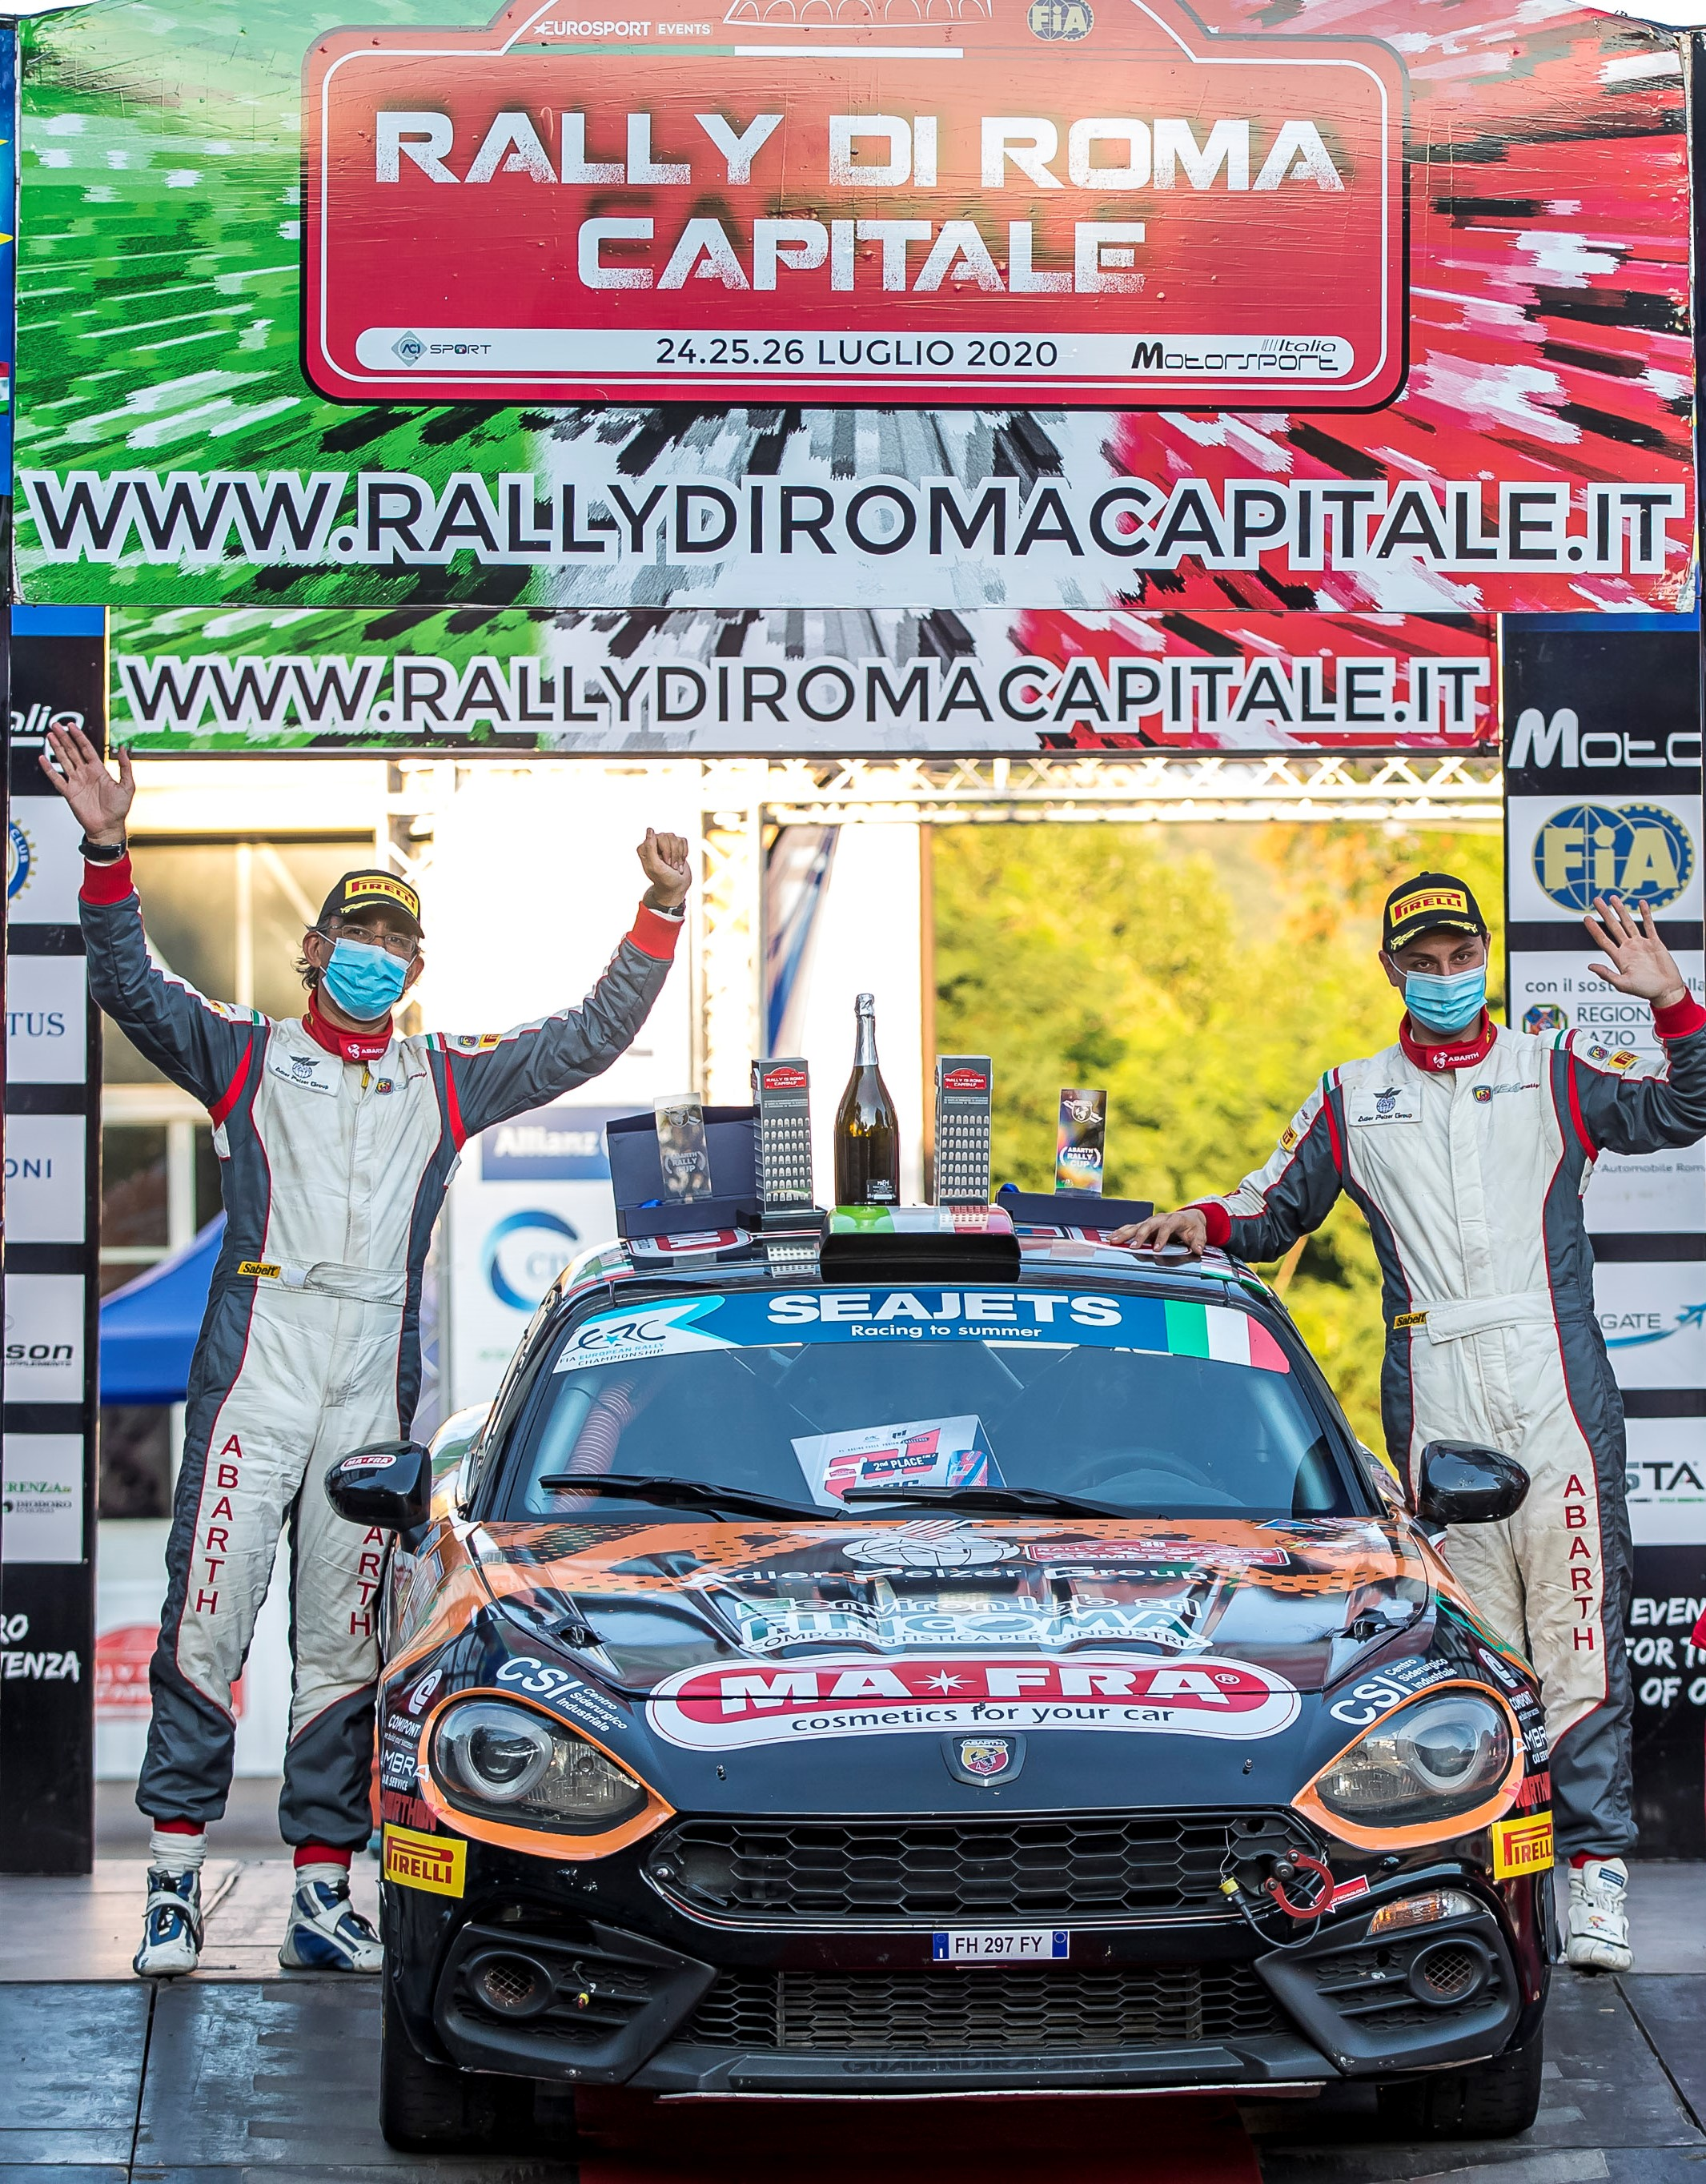 36 MABELLINI Andrea (ITA), MOMETTI Roberto (ITA), Team Napoca Rally Academy, Abarth 124 Rally, podium ambiance during the 2020 Rally di Roma Capitale, 1st round of the 2020 FIA European Rally Championship, from July 24 to 26, 2020 in Rome, Italy - Photo Gregory Lenormand / DPPI